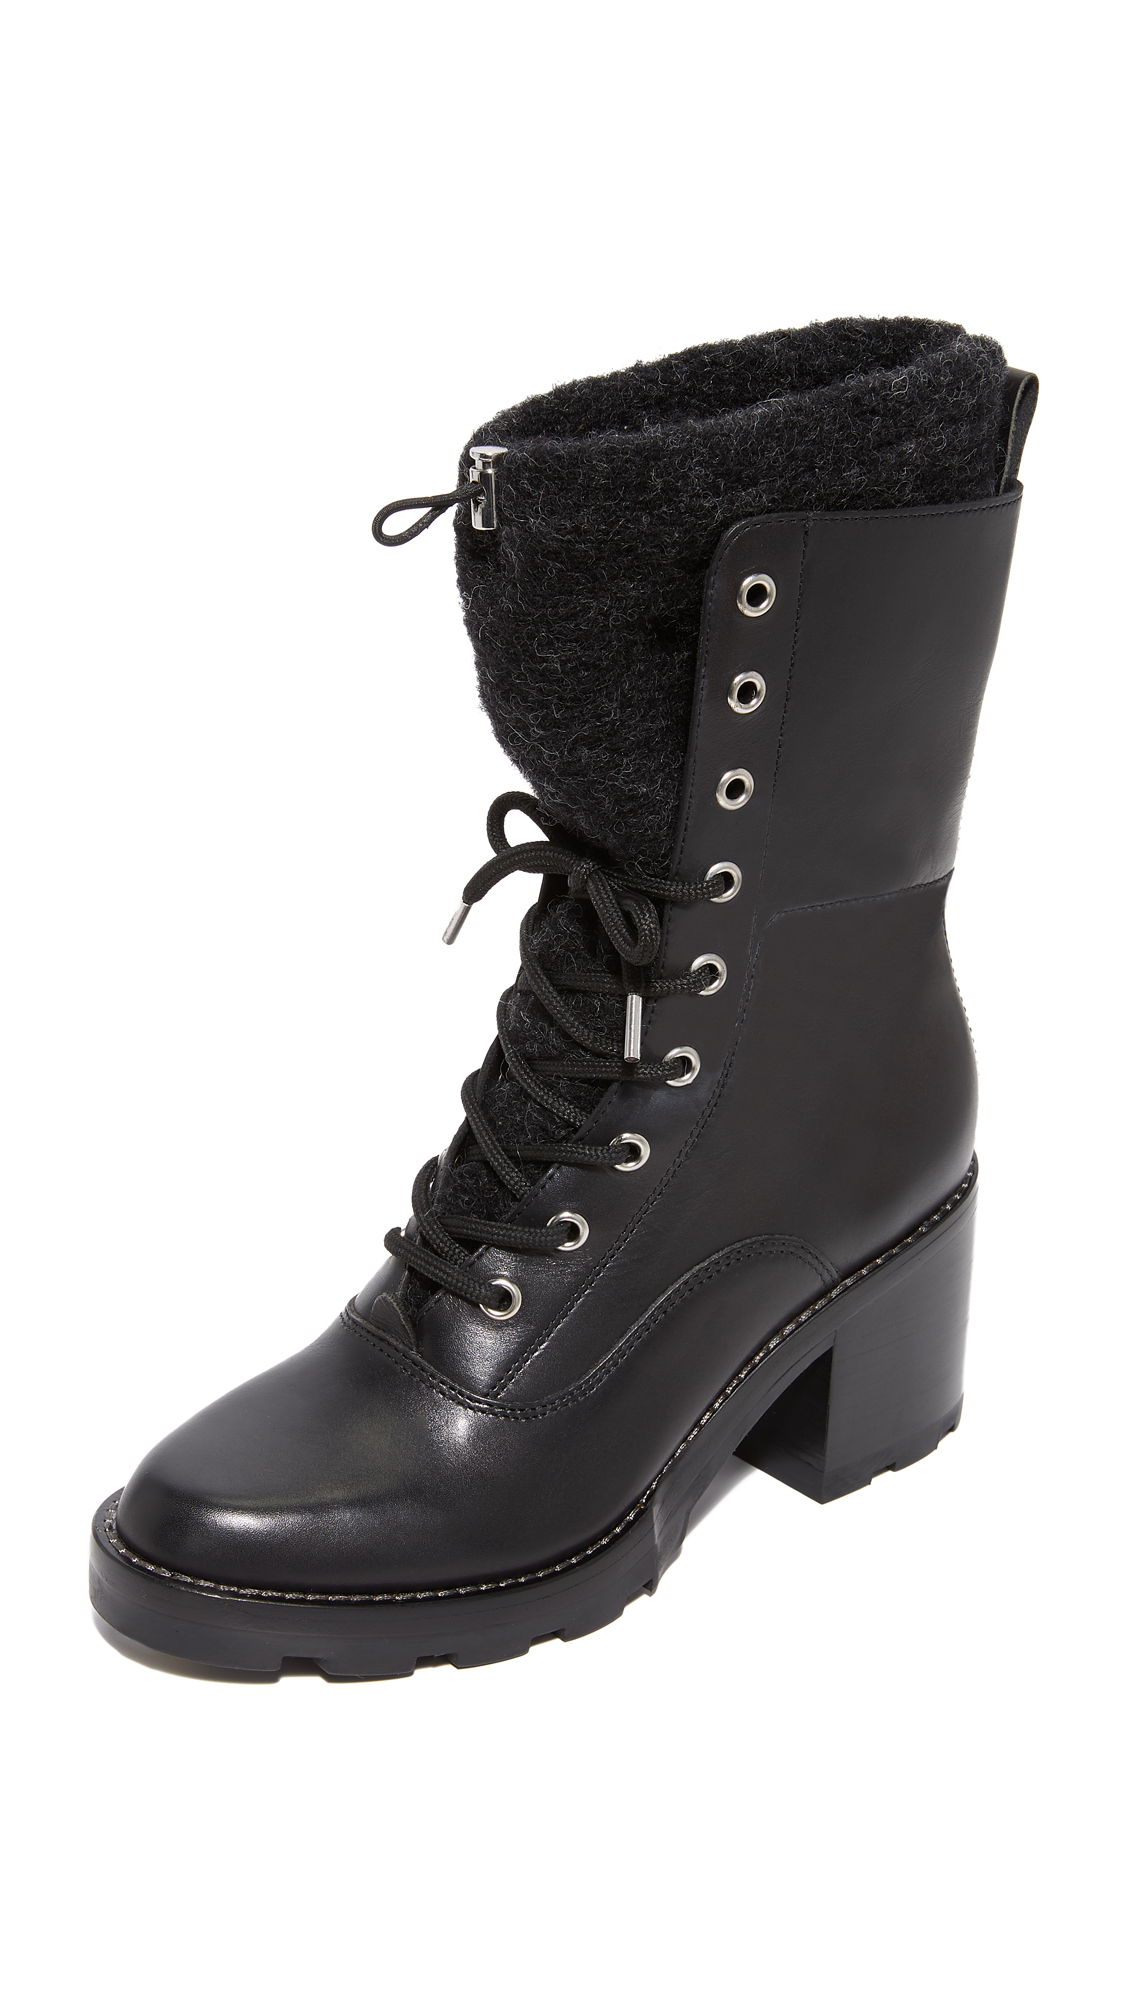 Sigerson Morrison Gladys Lace Up Booties - Black/Grey